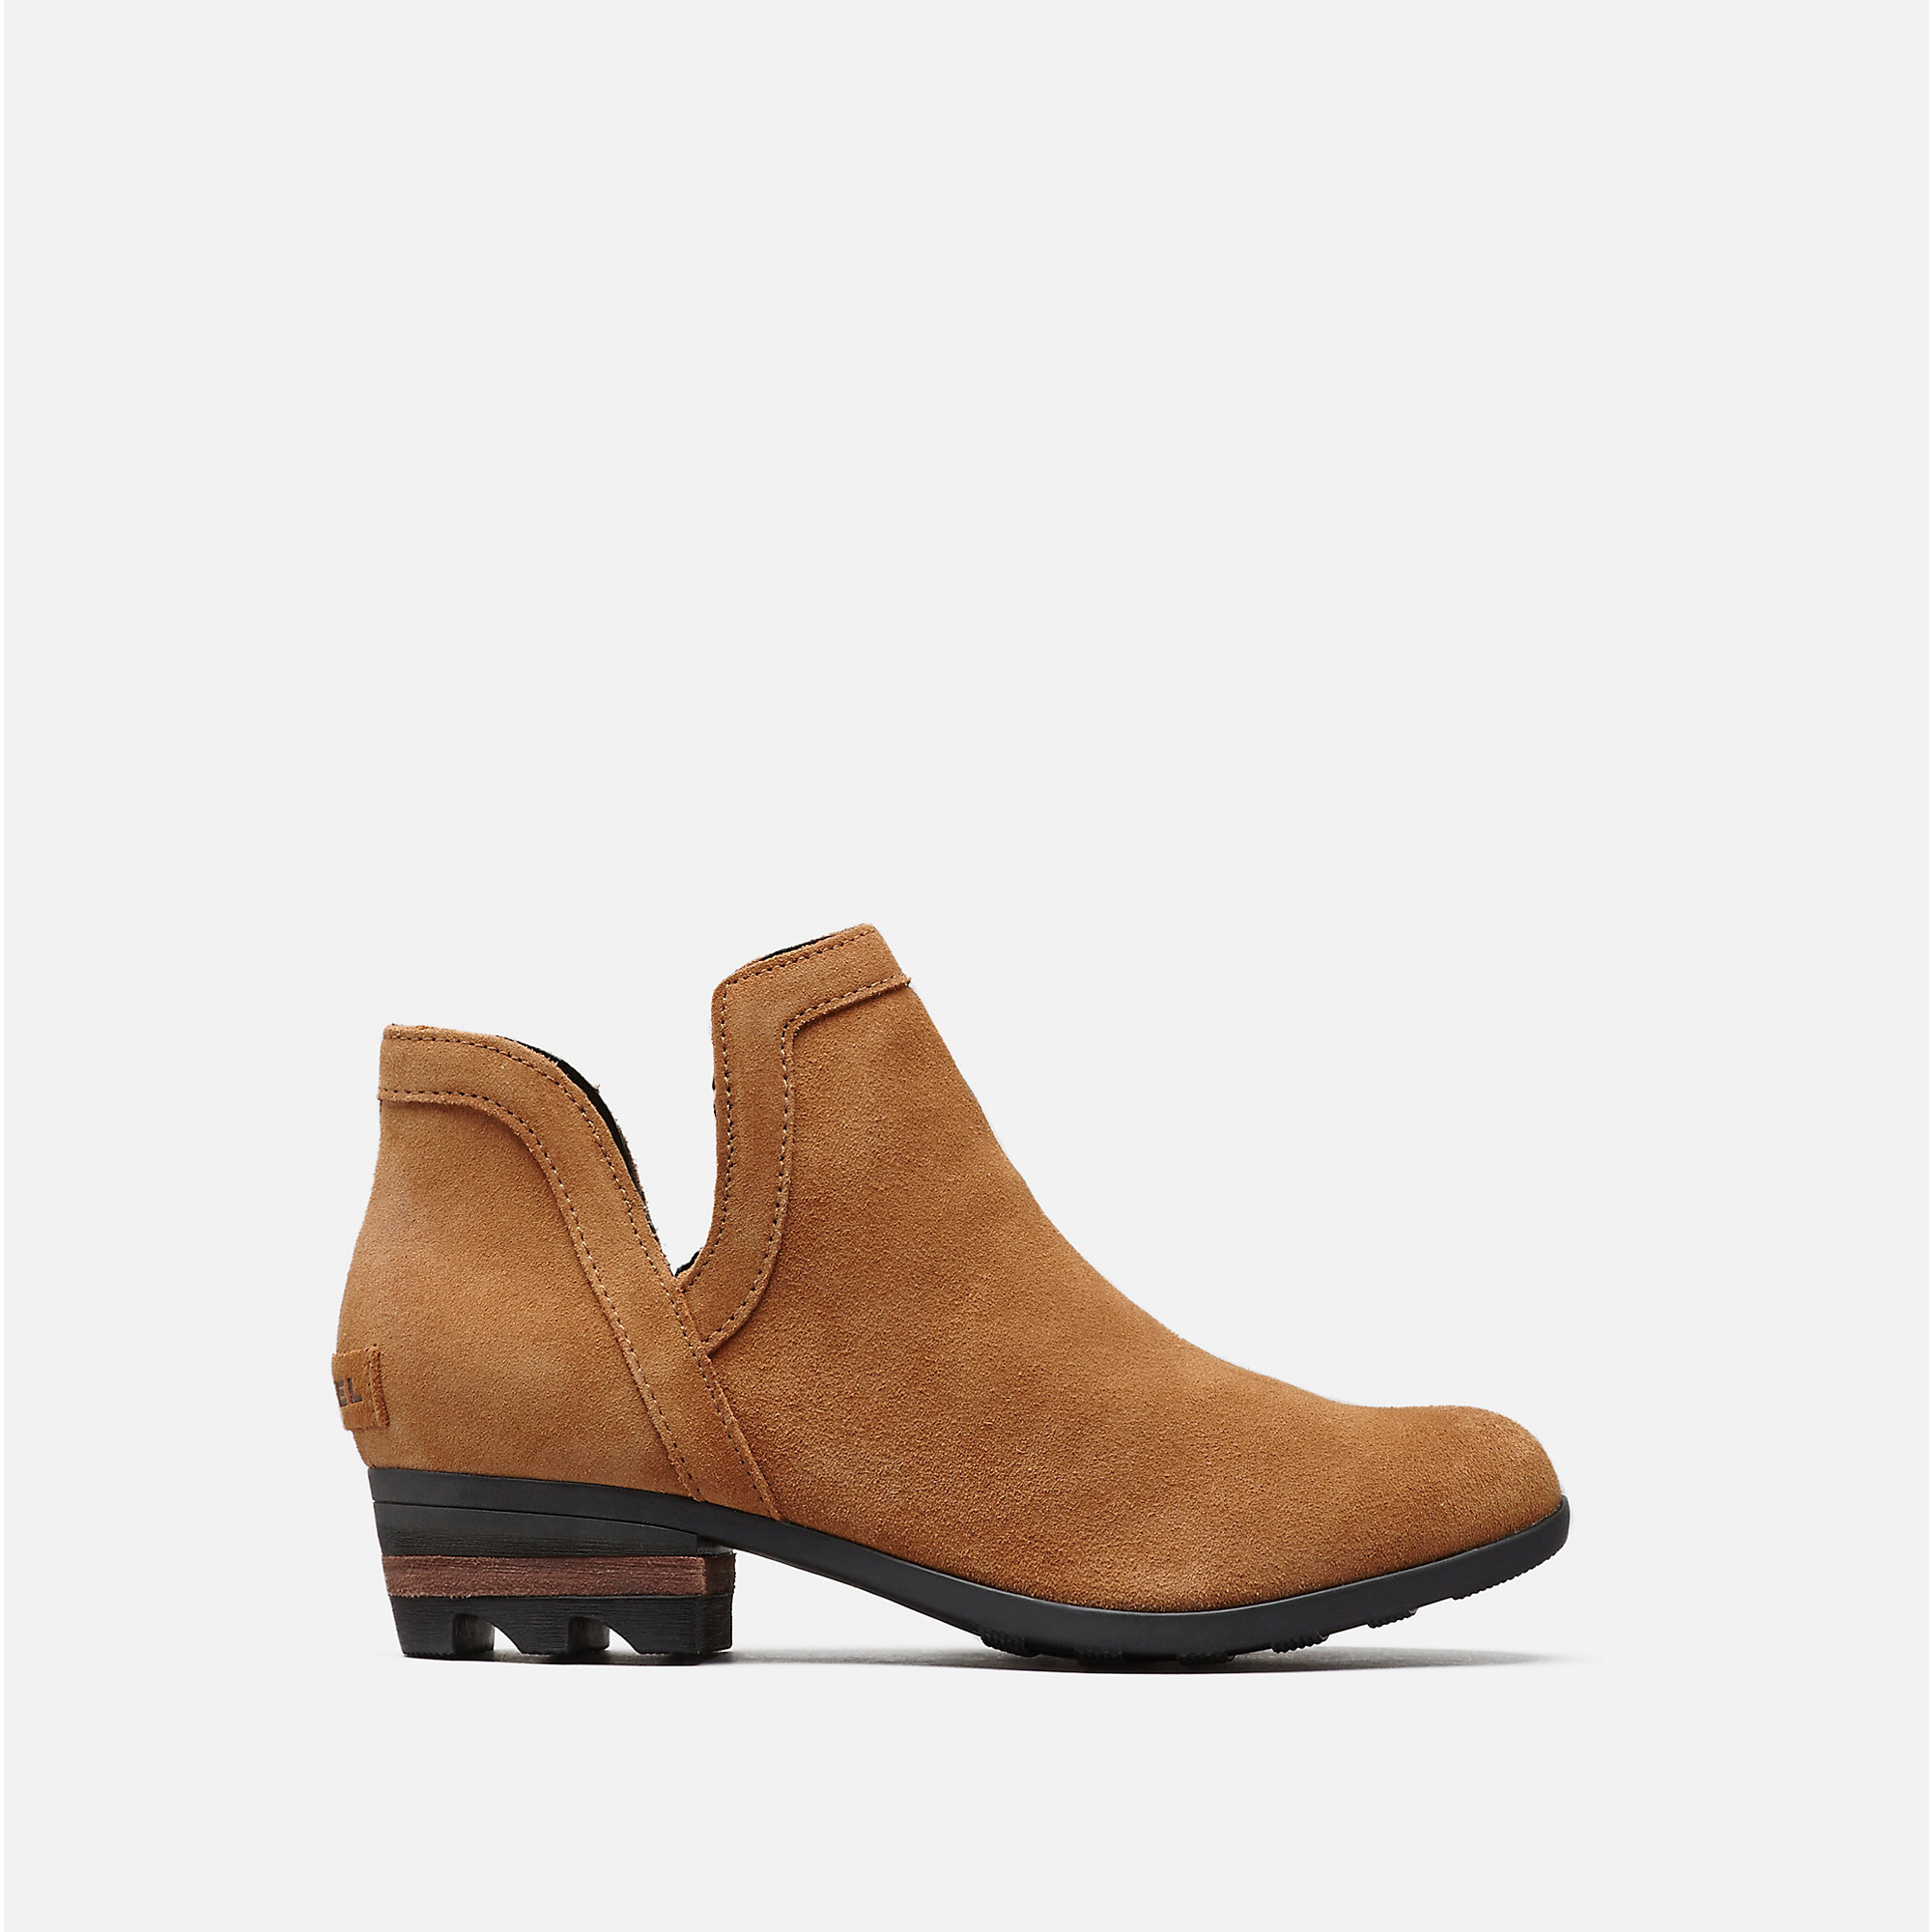 LOLLA CUT OUT BOOTIE | Camel Brown